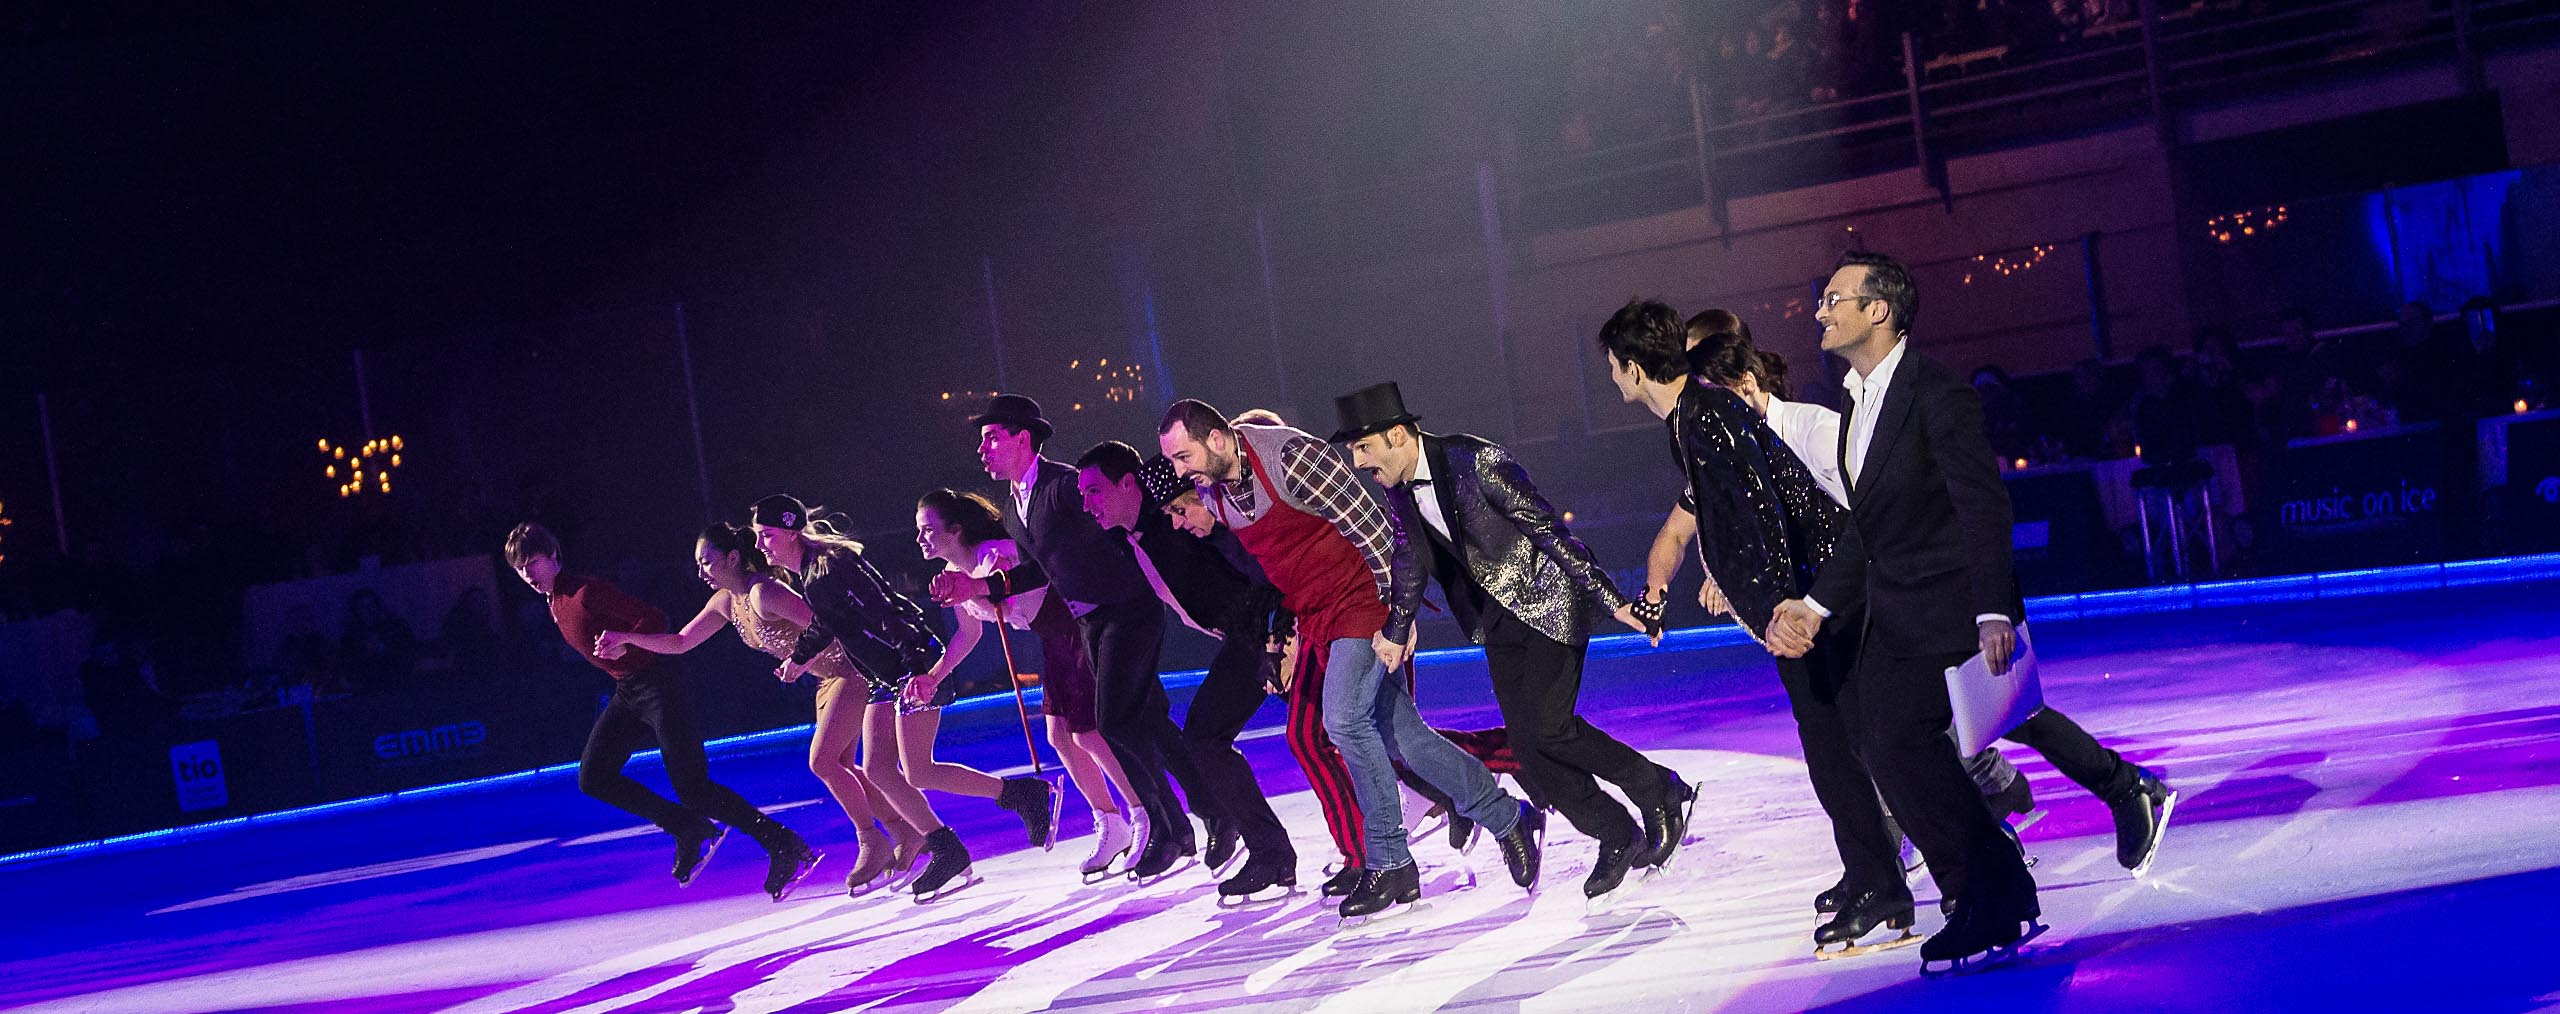 Cast of Music on Ice